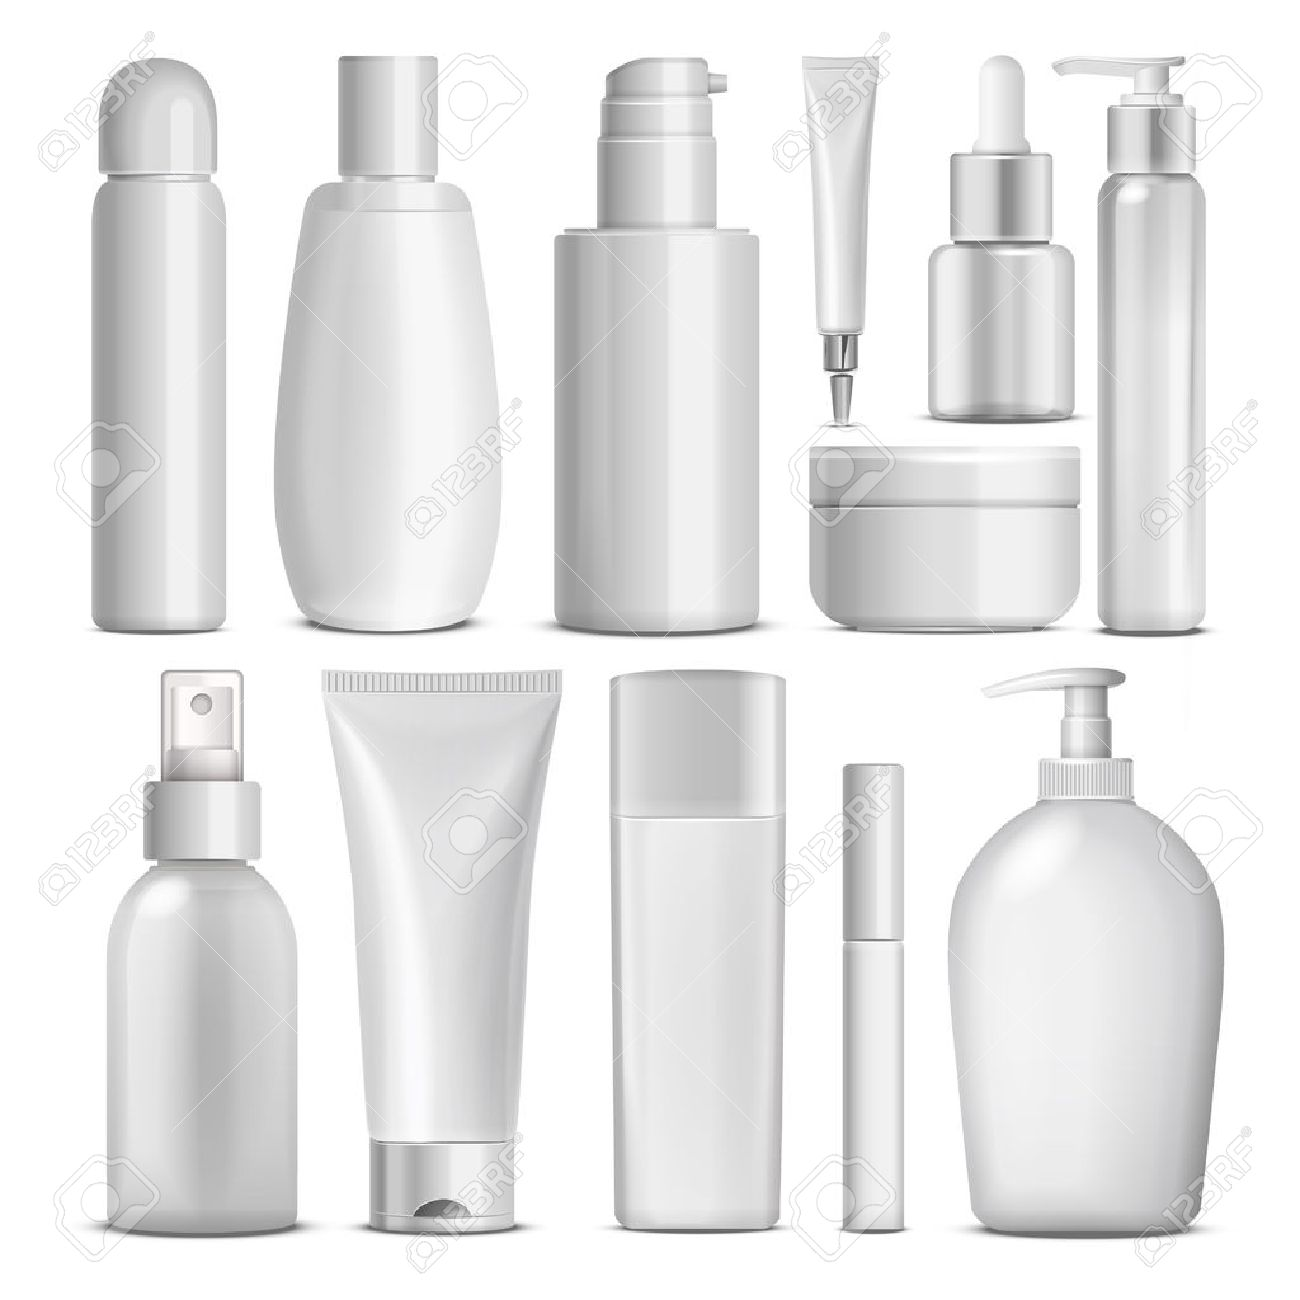 blank cosmetic package collection set isolated on white background - 48356400